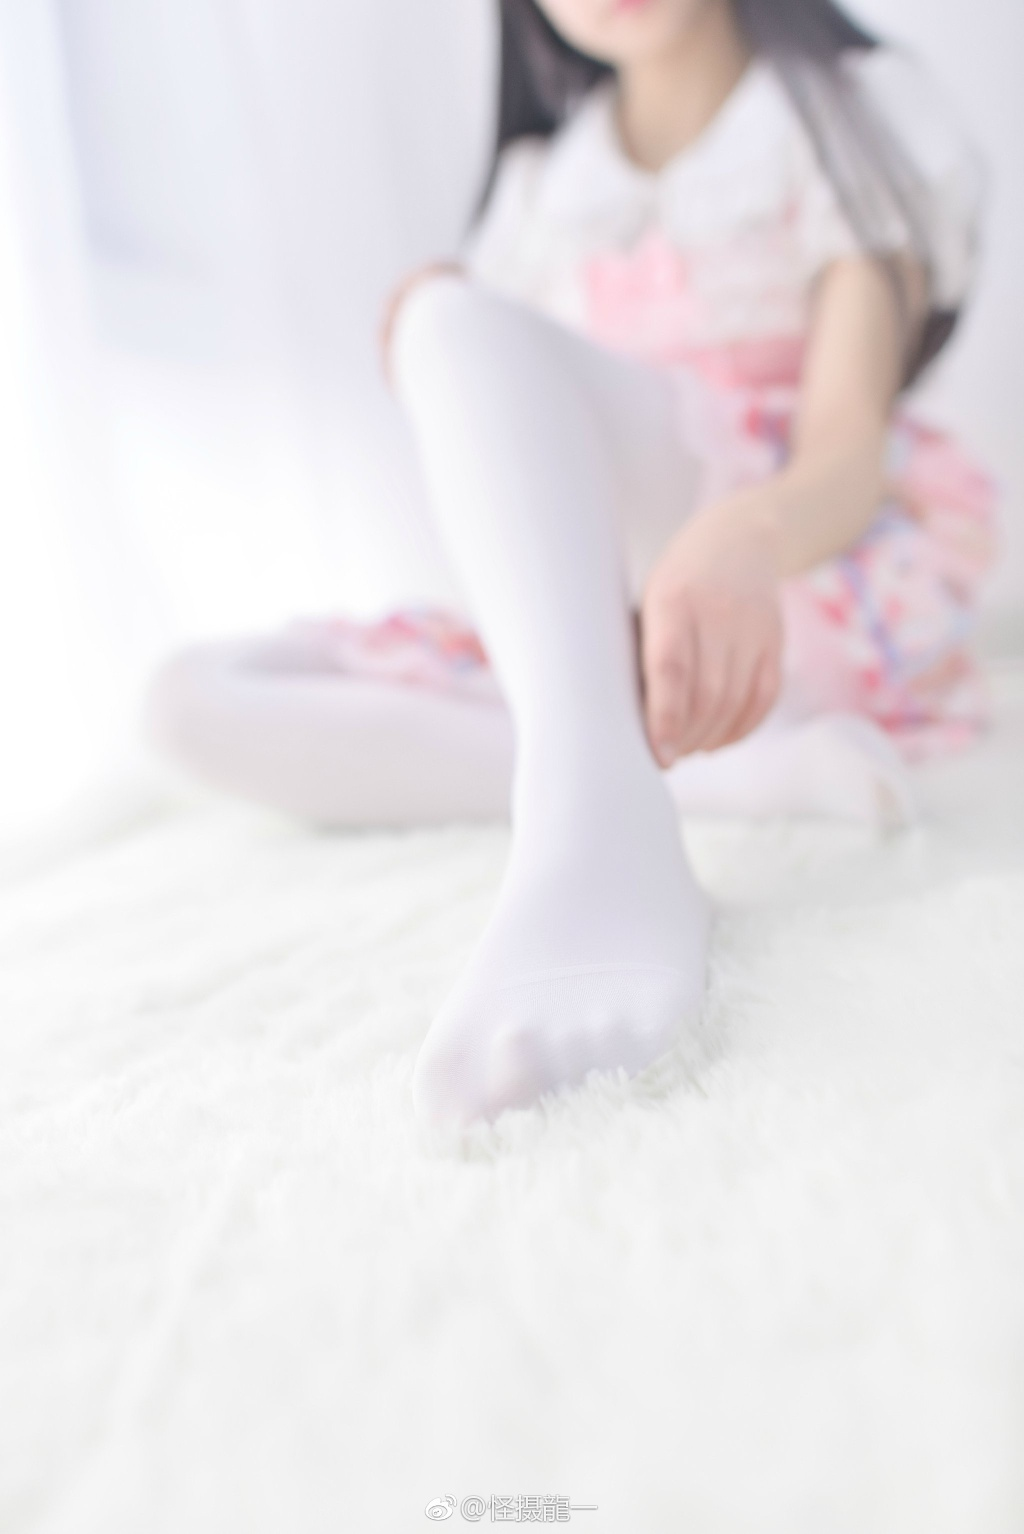 6gNh - Beautiful feet and legs 【2019.04.26】